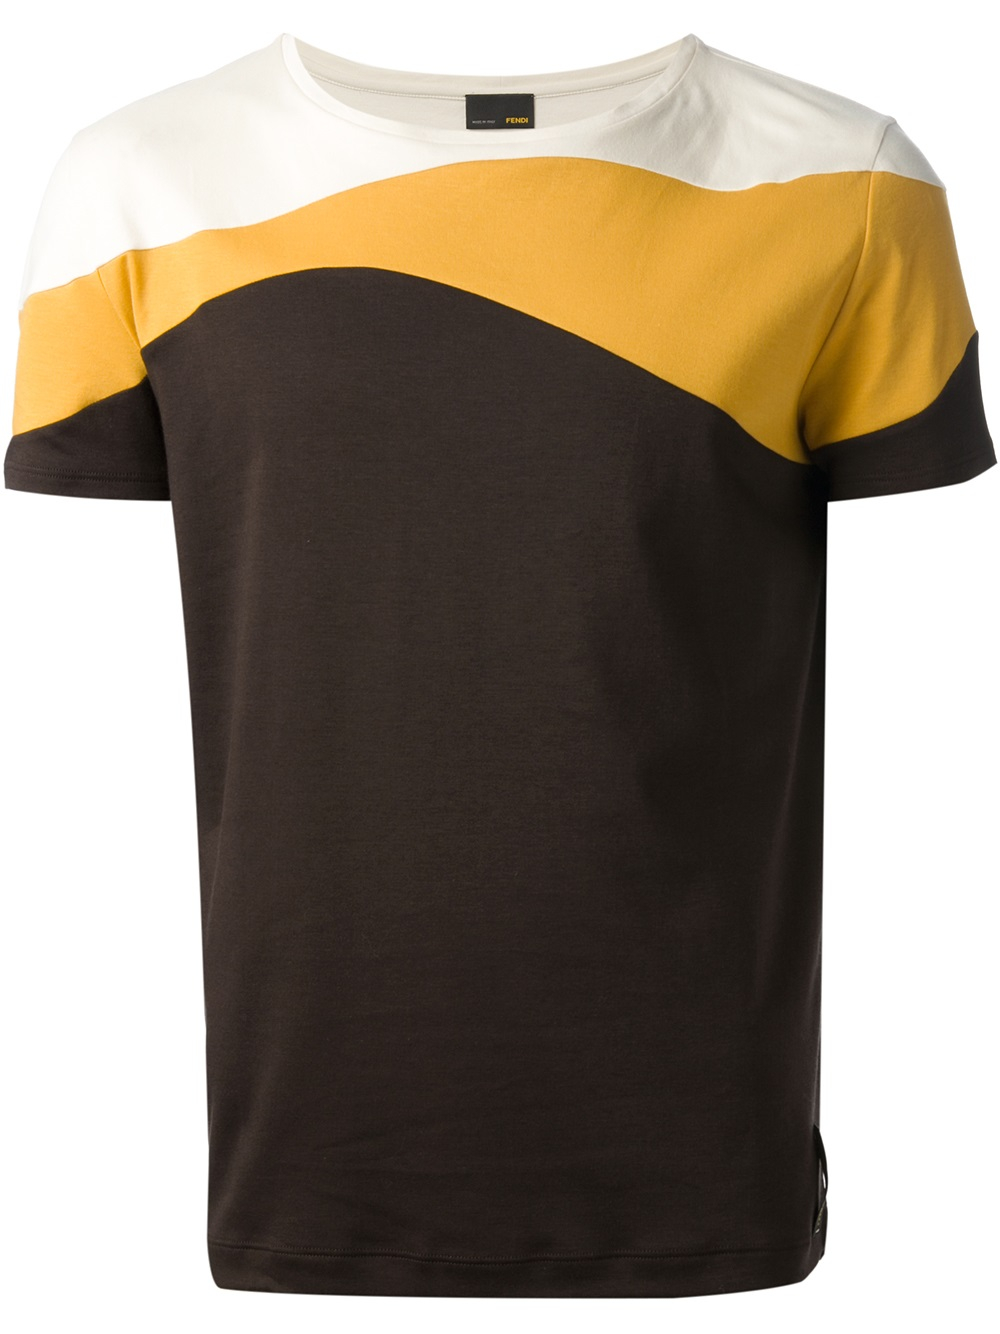 Fendi Colour Block Tshirt In Brown Yellow For Men Lyst